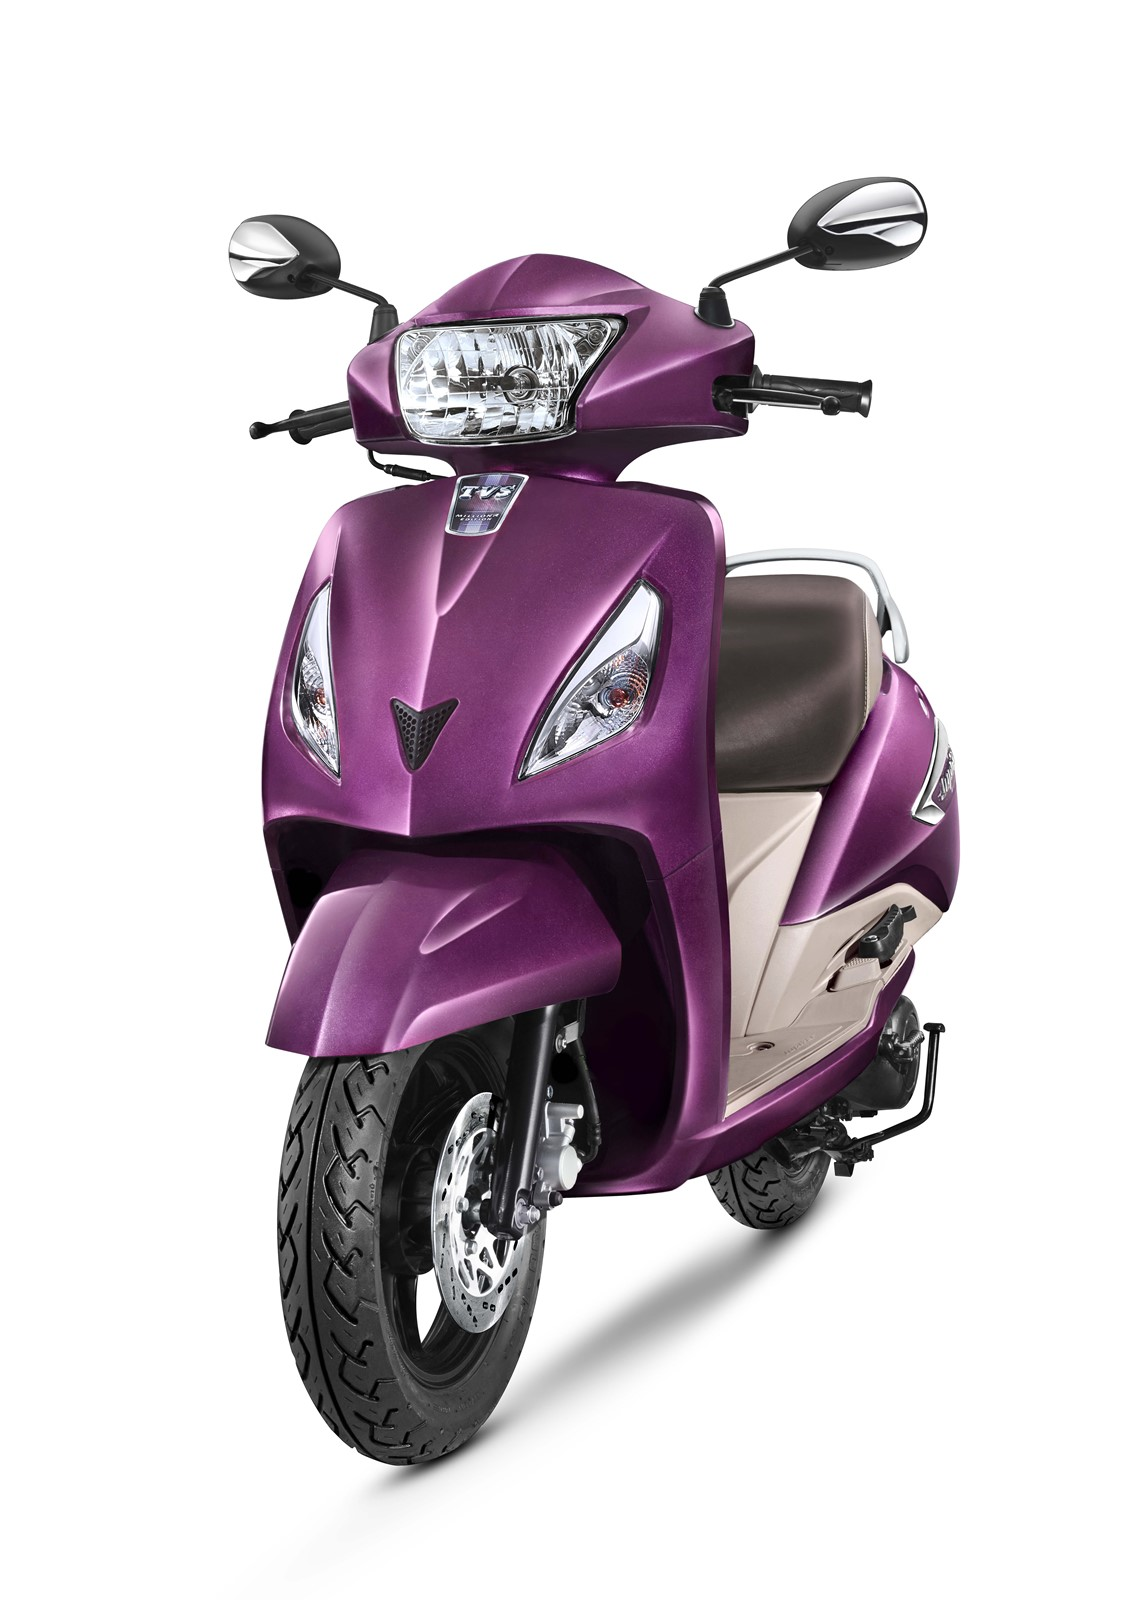 TVS Jupiter with disc brake